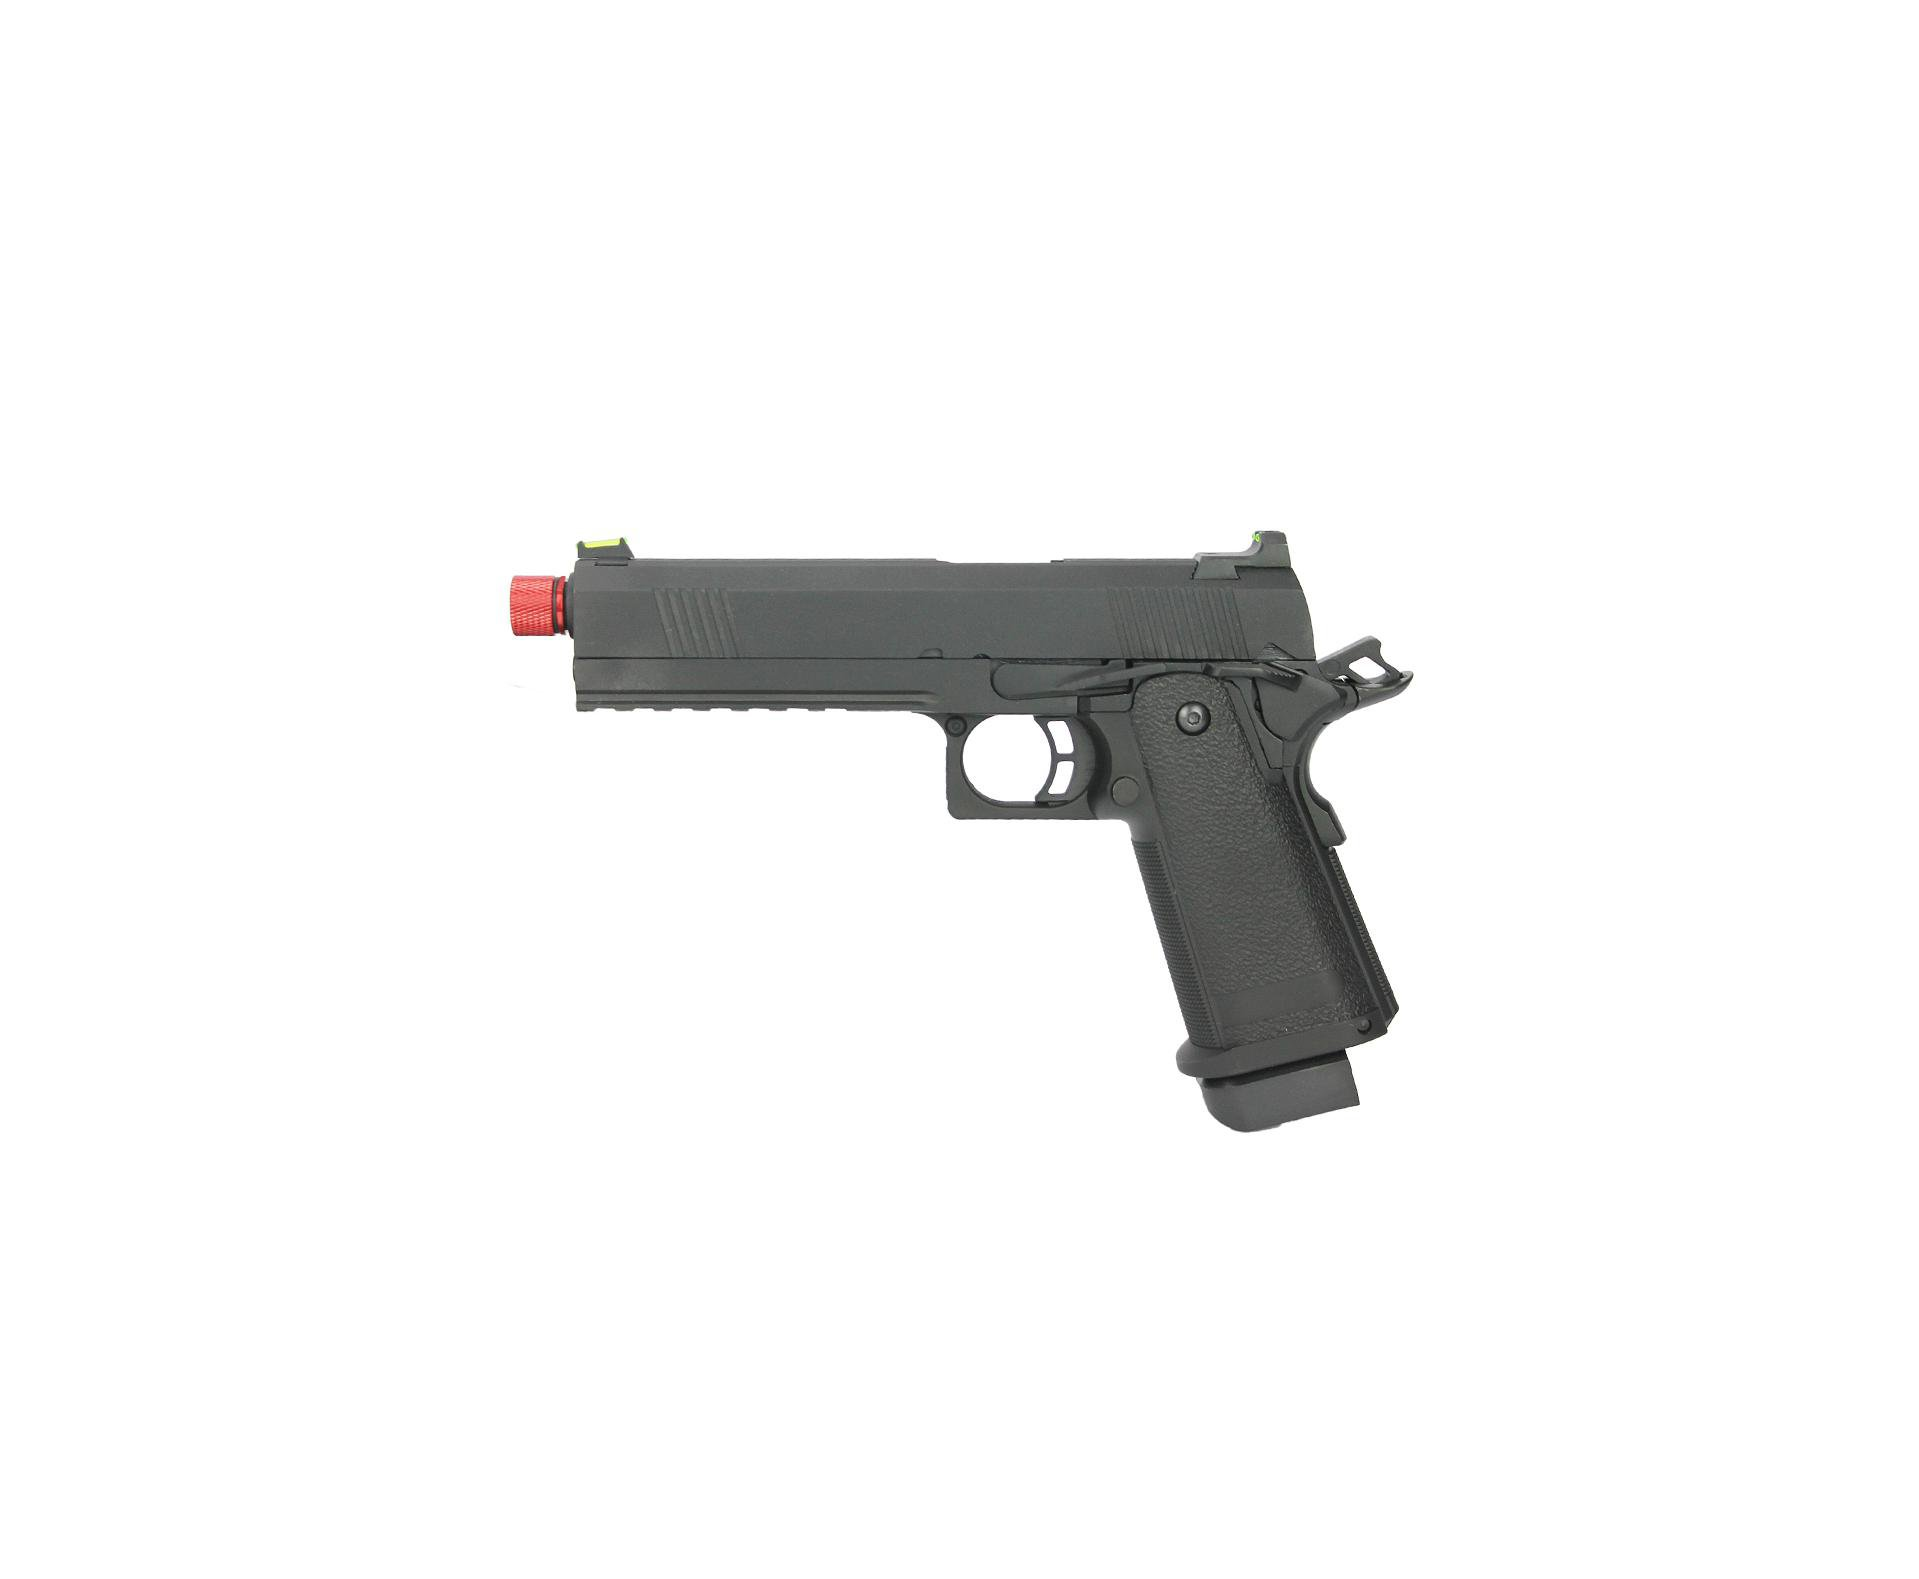 Pistola De Airsoft Gbb 1911 Black Devil 5.1 Blowback Neptune Rossi 6mm